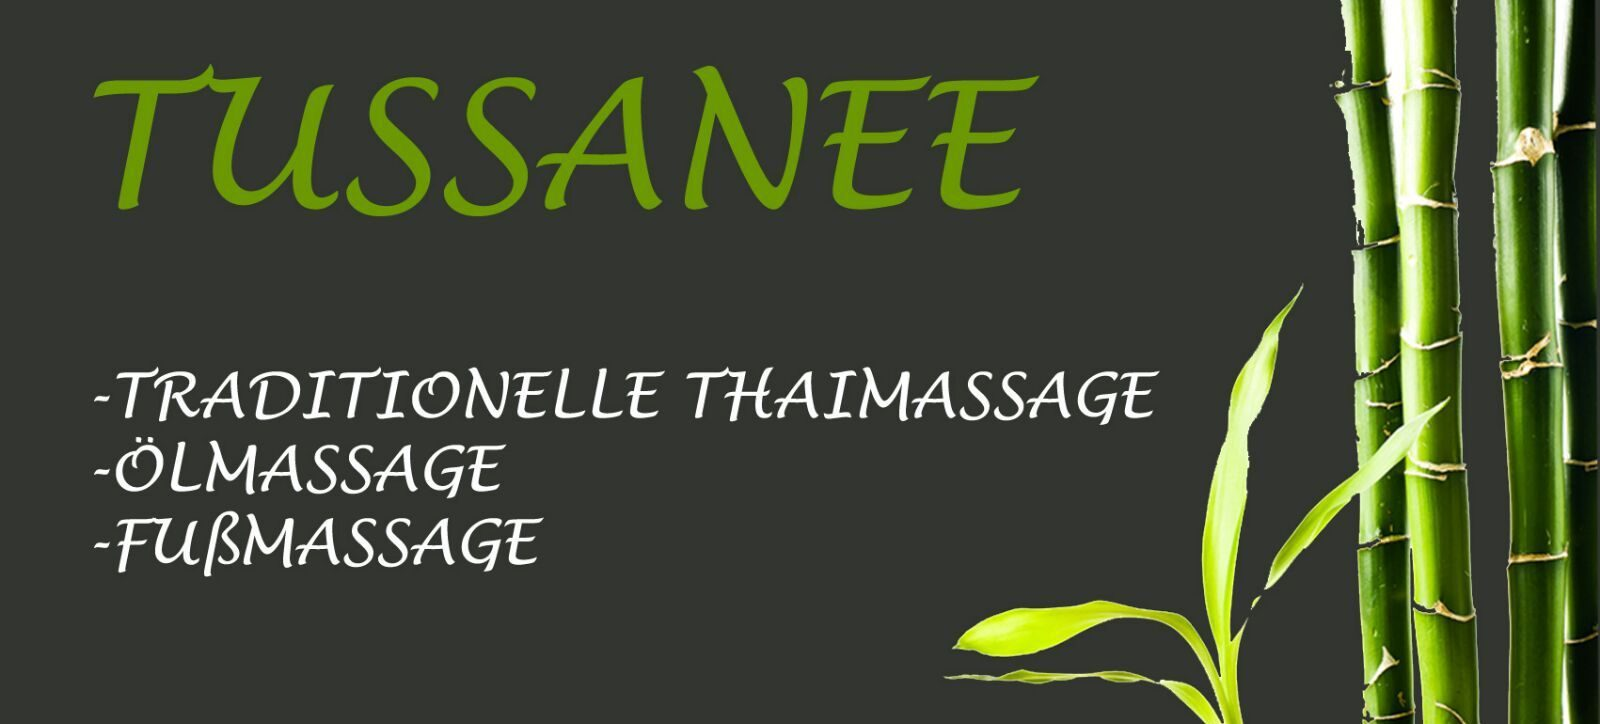 Tussanee Thai Massage Linz